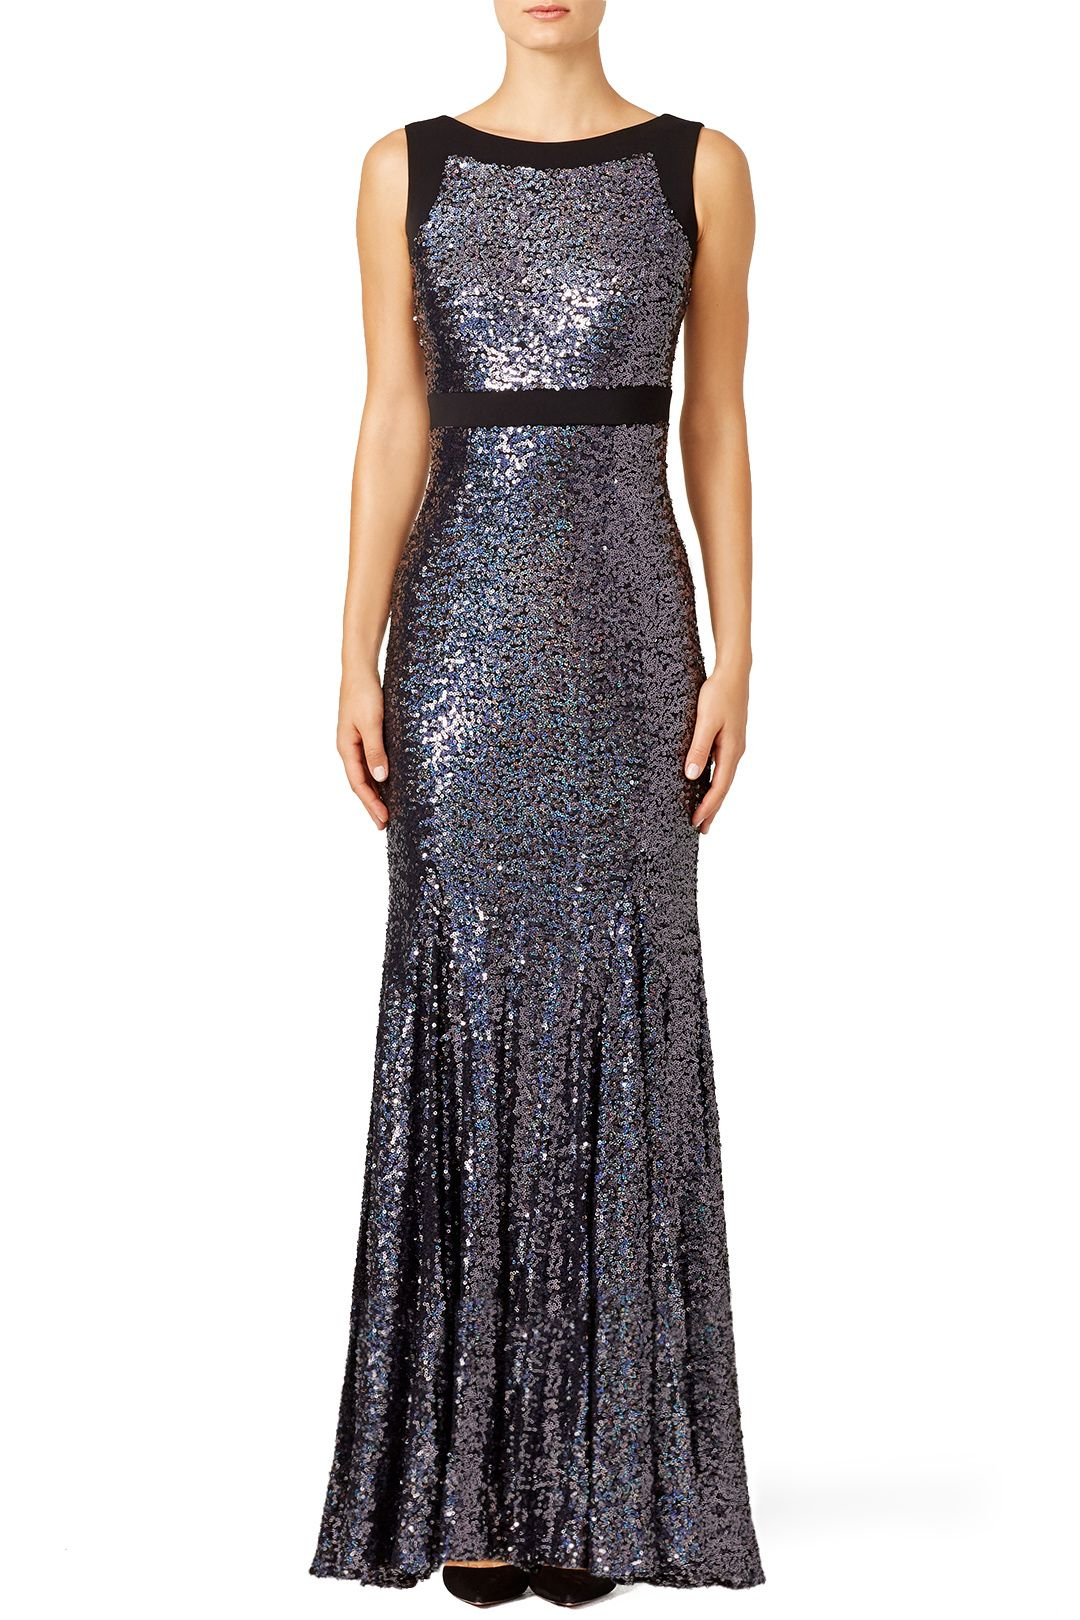 Plum Shine Gown | Pinterest | Badgley mischka, Gowns and Closet clothing